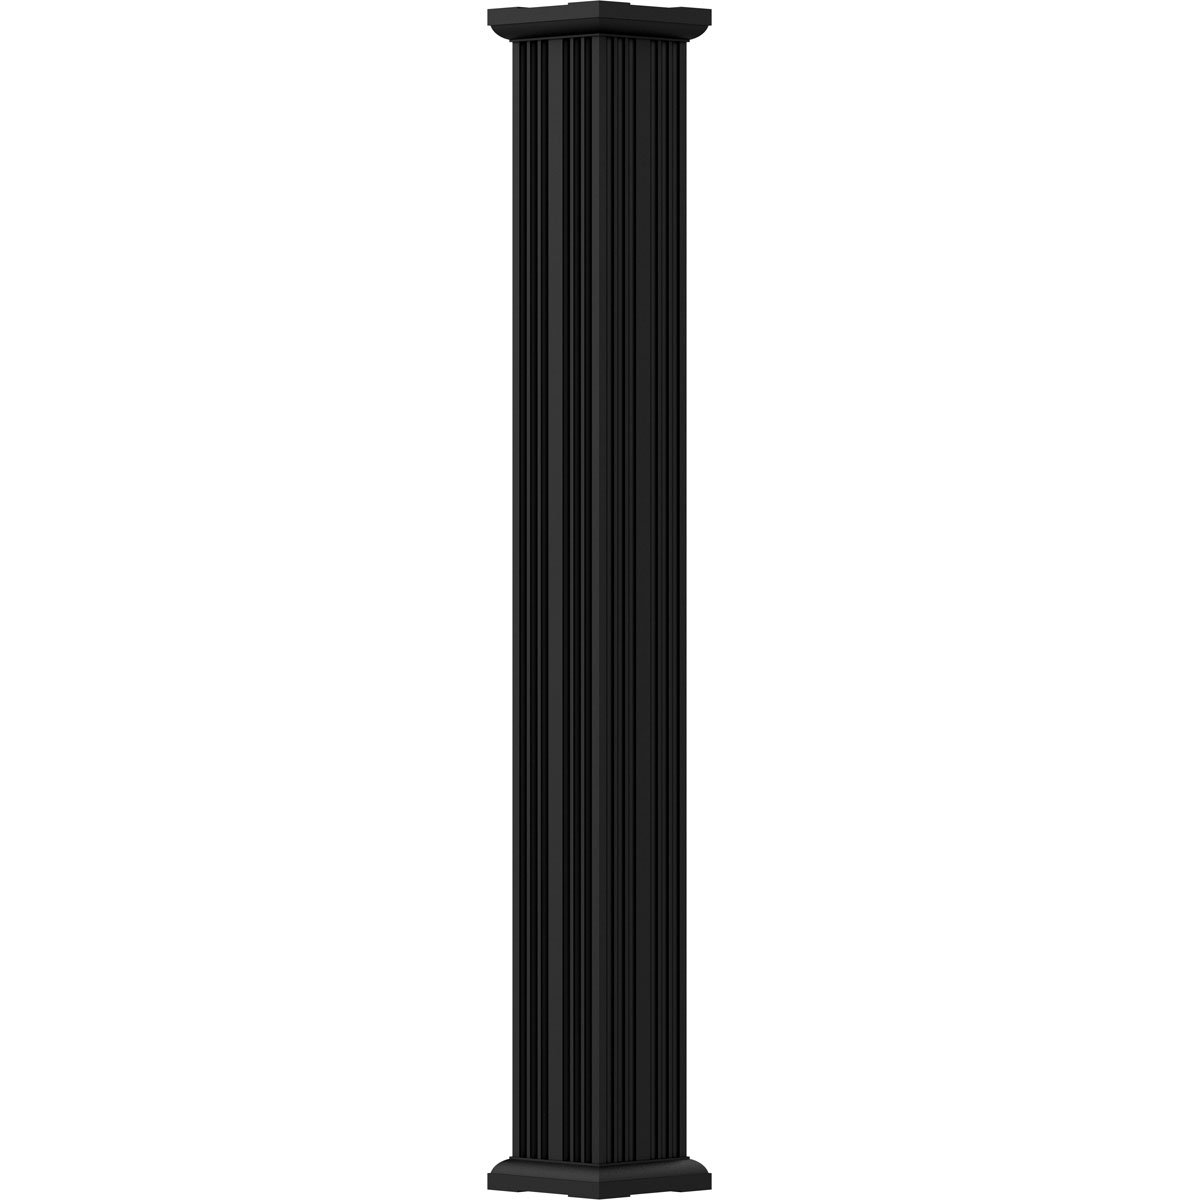 AFCO EA0409ENFSPTUTU 4' x 9' Endura-Aluminum Column, Square Shaft (Load-Bearing 12,000 lbs), Non-Tapered, Fluted, Primed, Ready For Paint w/ Capital & Base